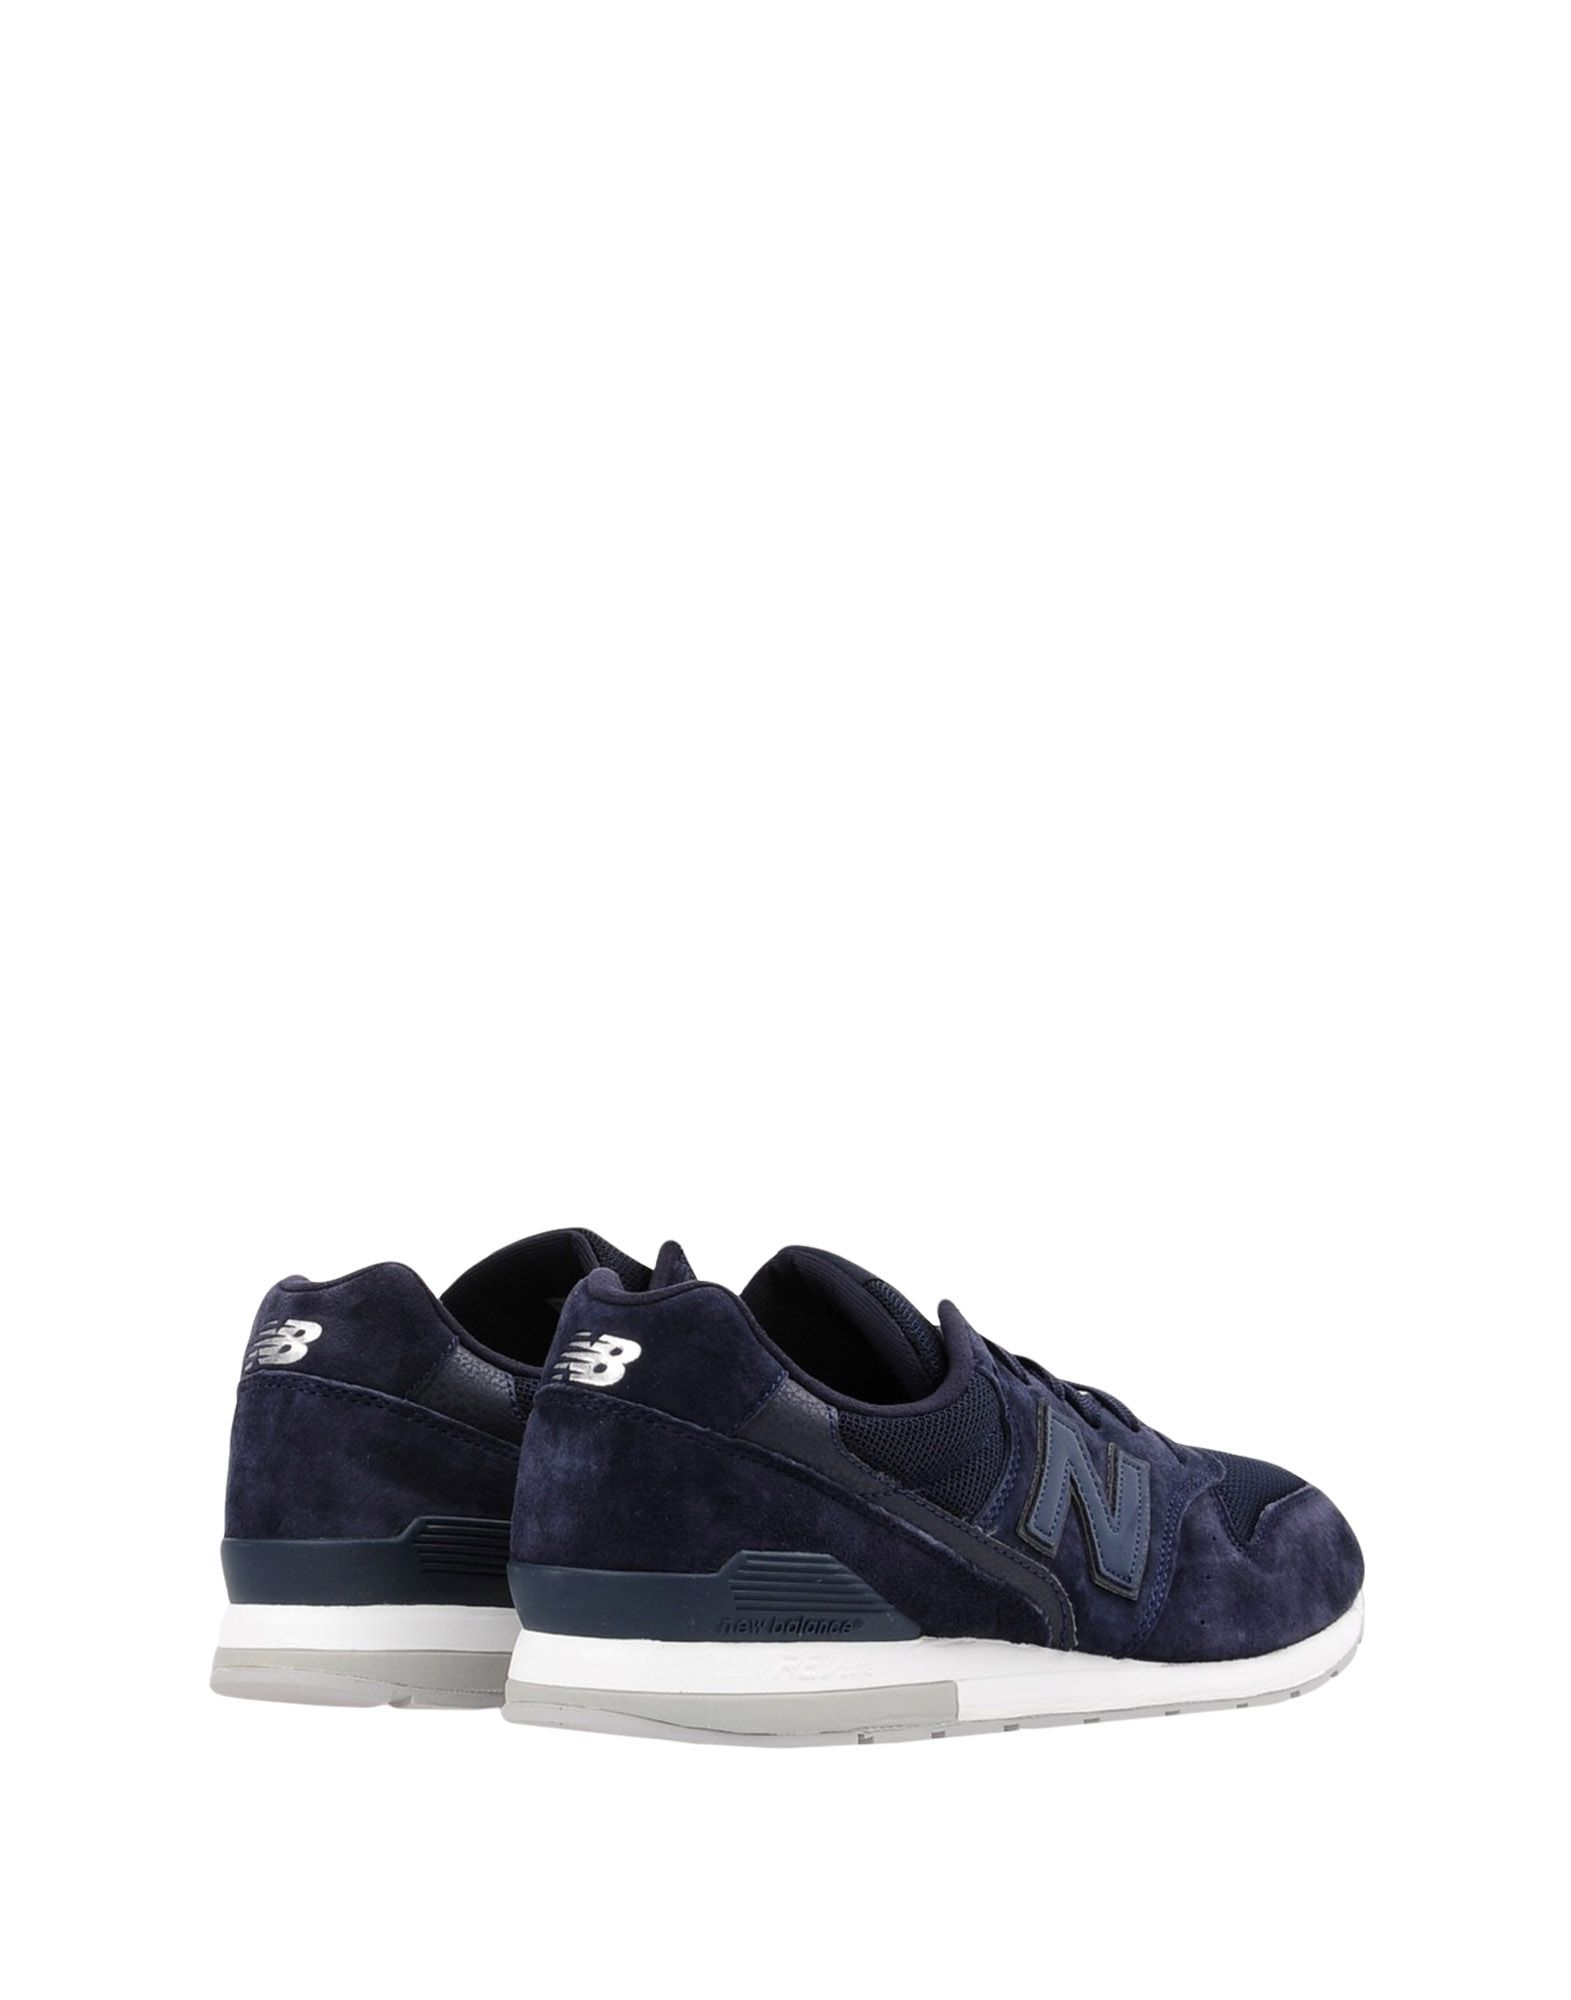 Sneakers New Balance 996 Tonal Pack - Homme - Sneakers New Balance sur